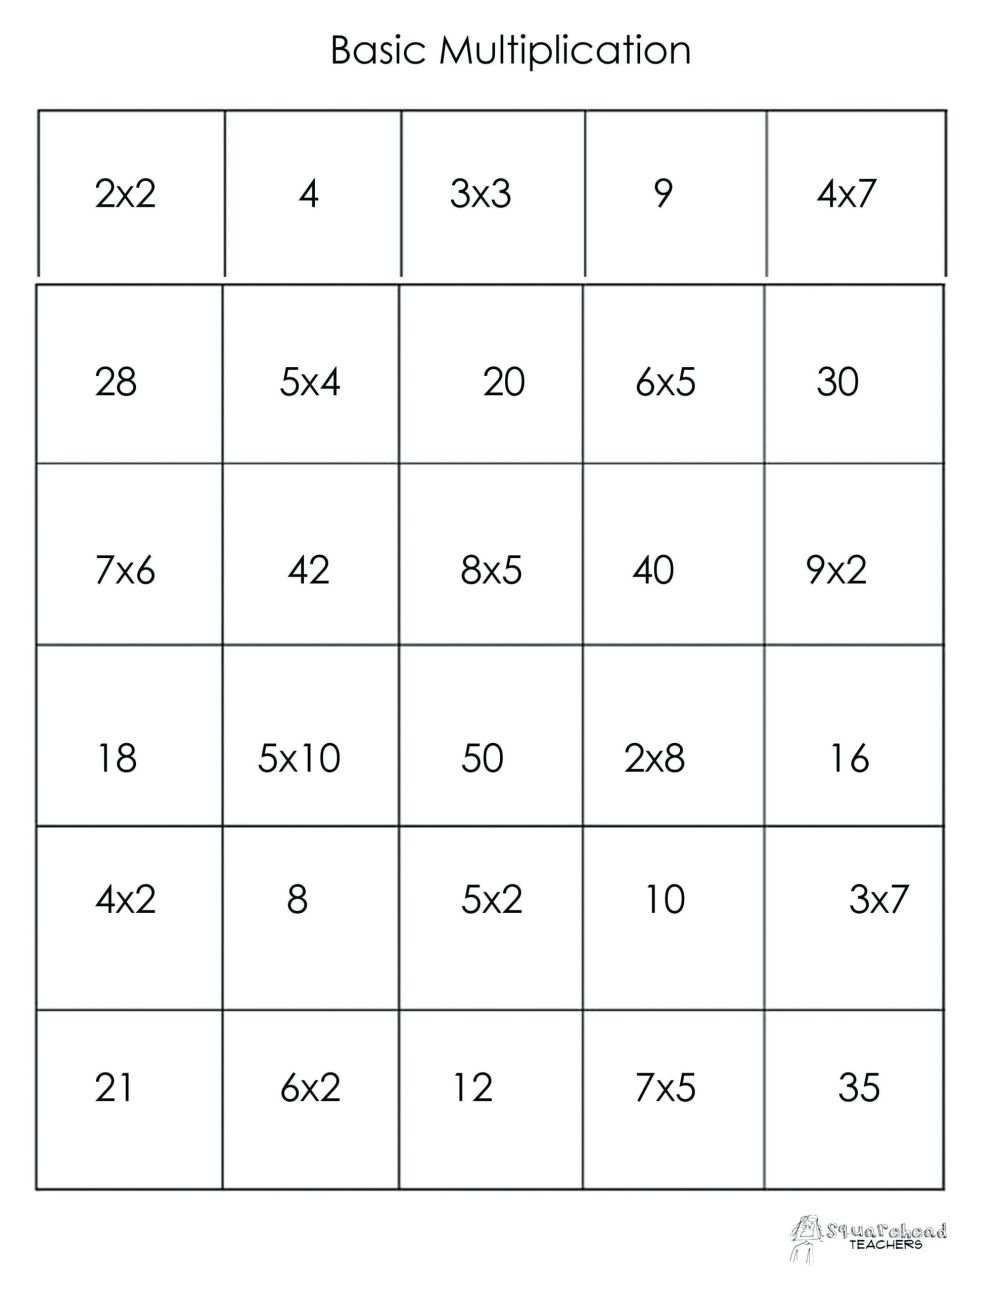 medium resolution of 3 Free Math Worksheets Second Grade 2 Counting Money Counting Money Pennies  Nickels Dimes Quarters - apocalomegaproductions.com